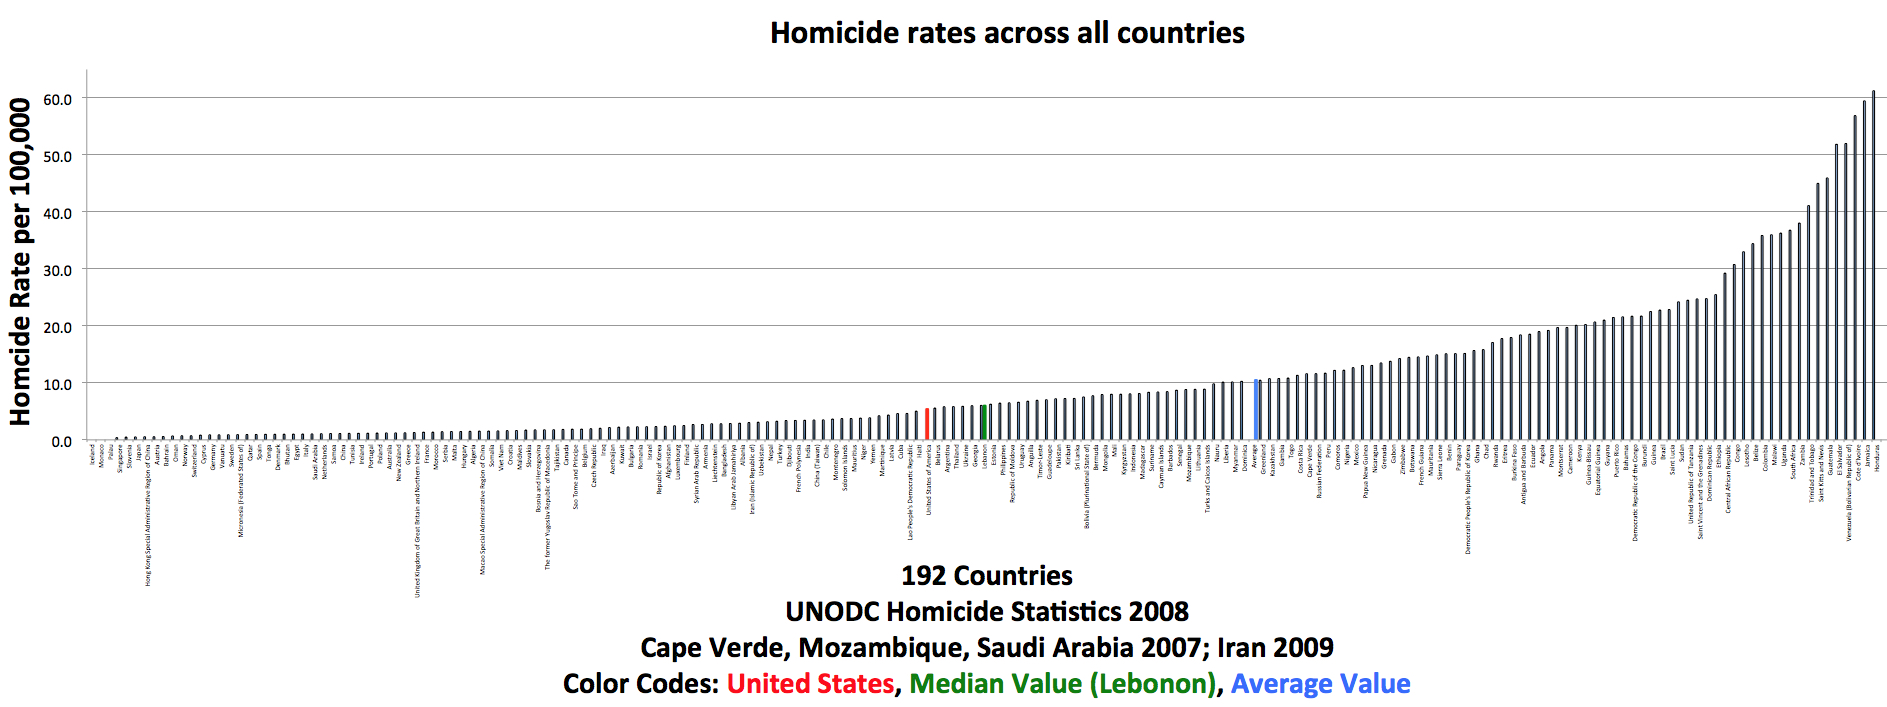 Chart comparing murder rates across countries.